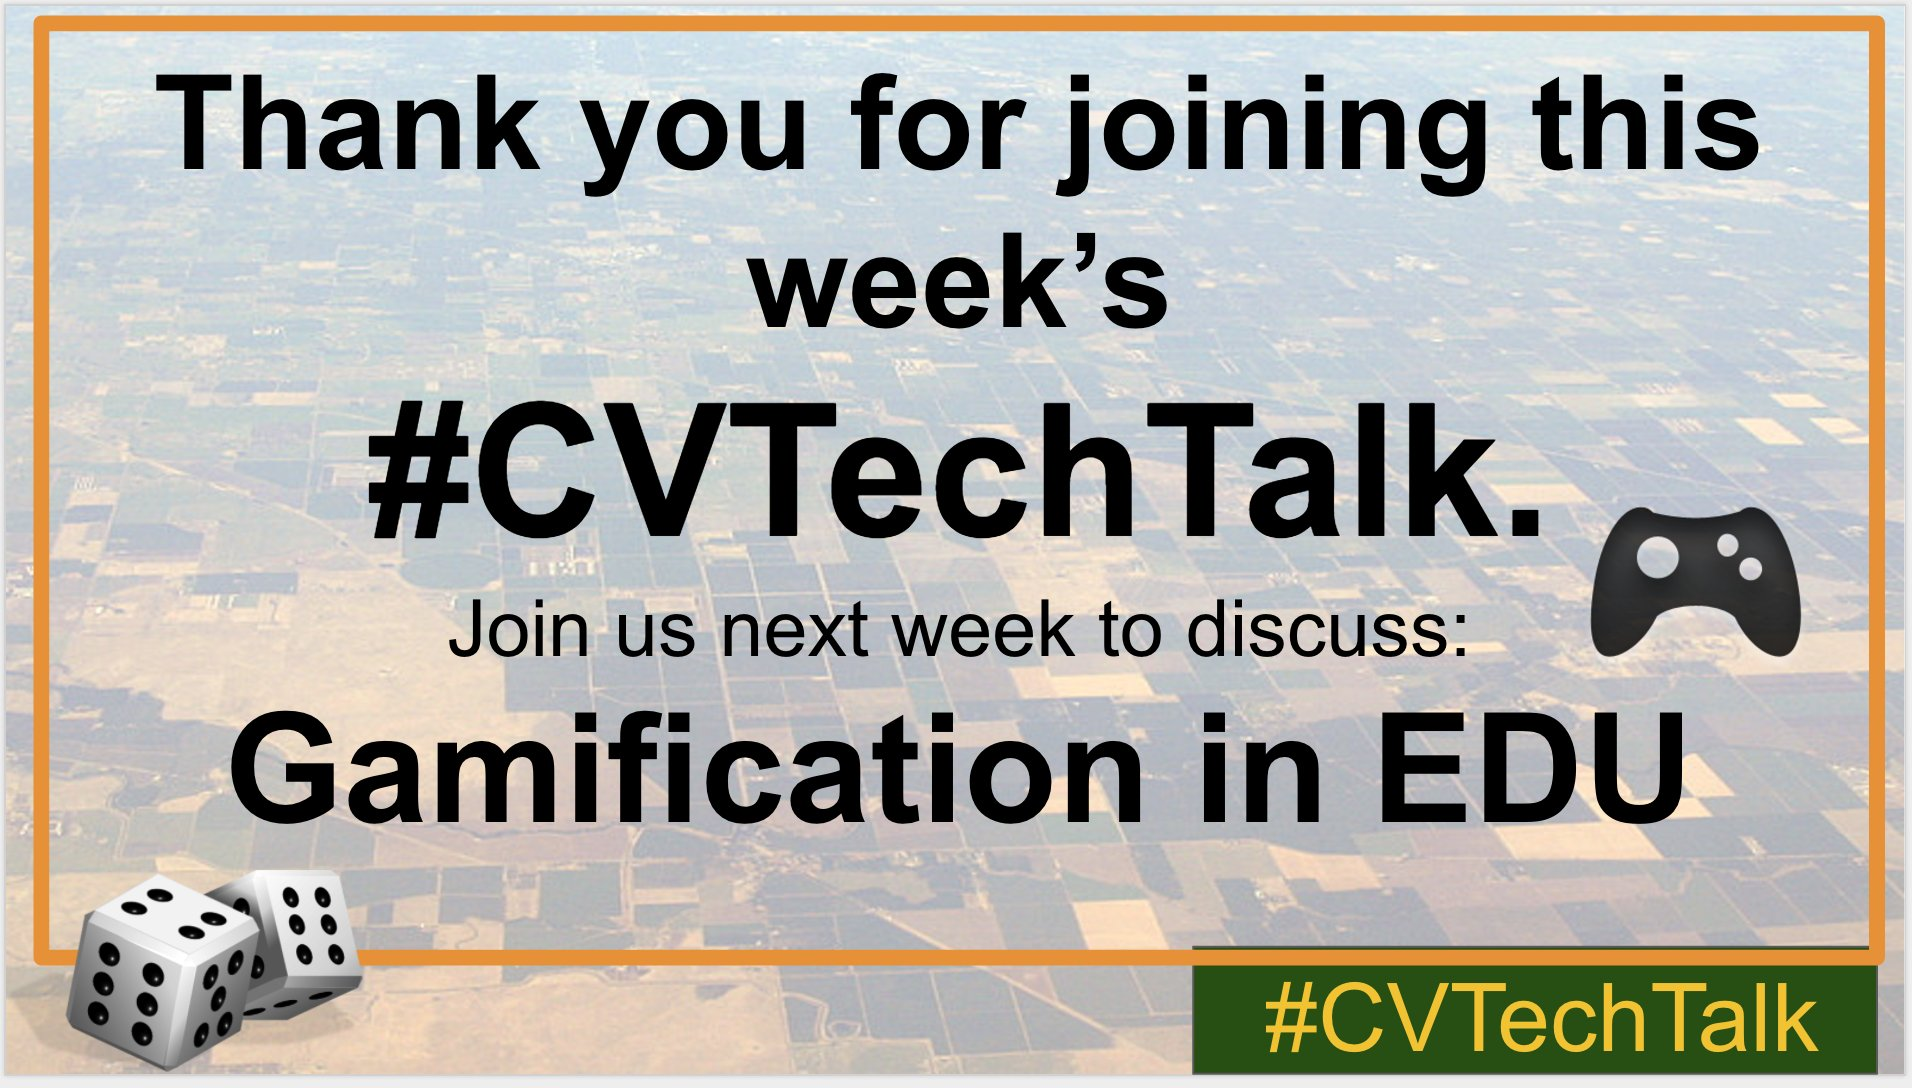 Thank you for joining this week's #cvtechtalk. Join us next week to discuss: Gamification in EDU https://t.co/OIjWk5WQ6V